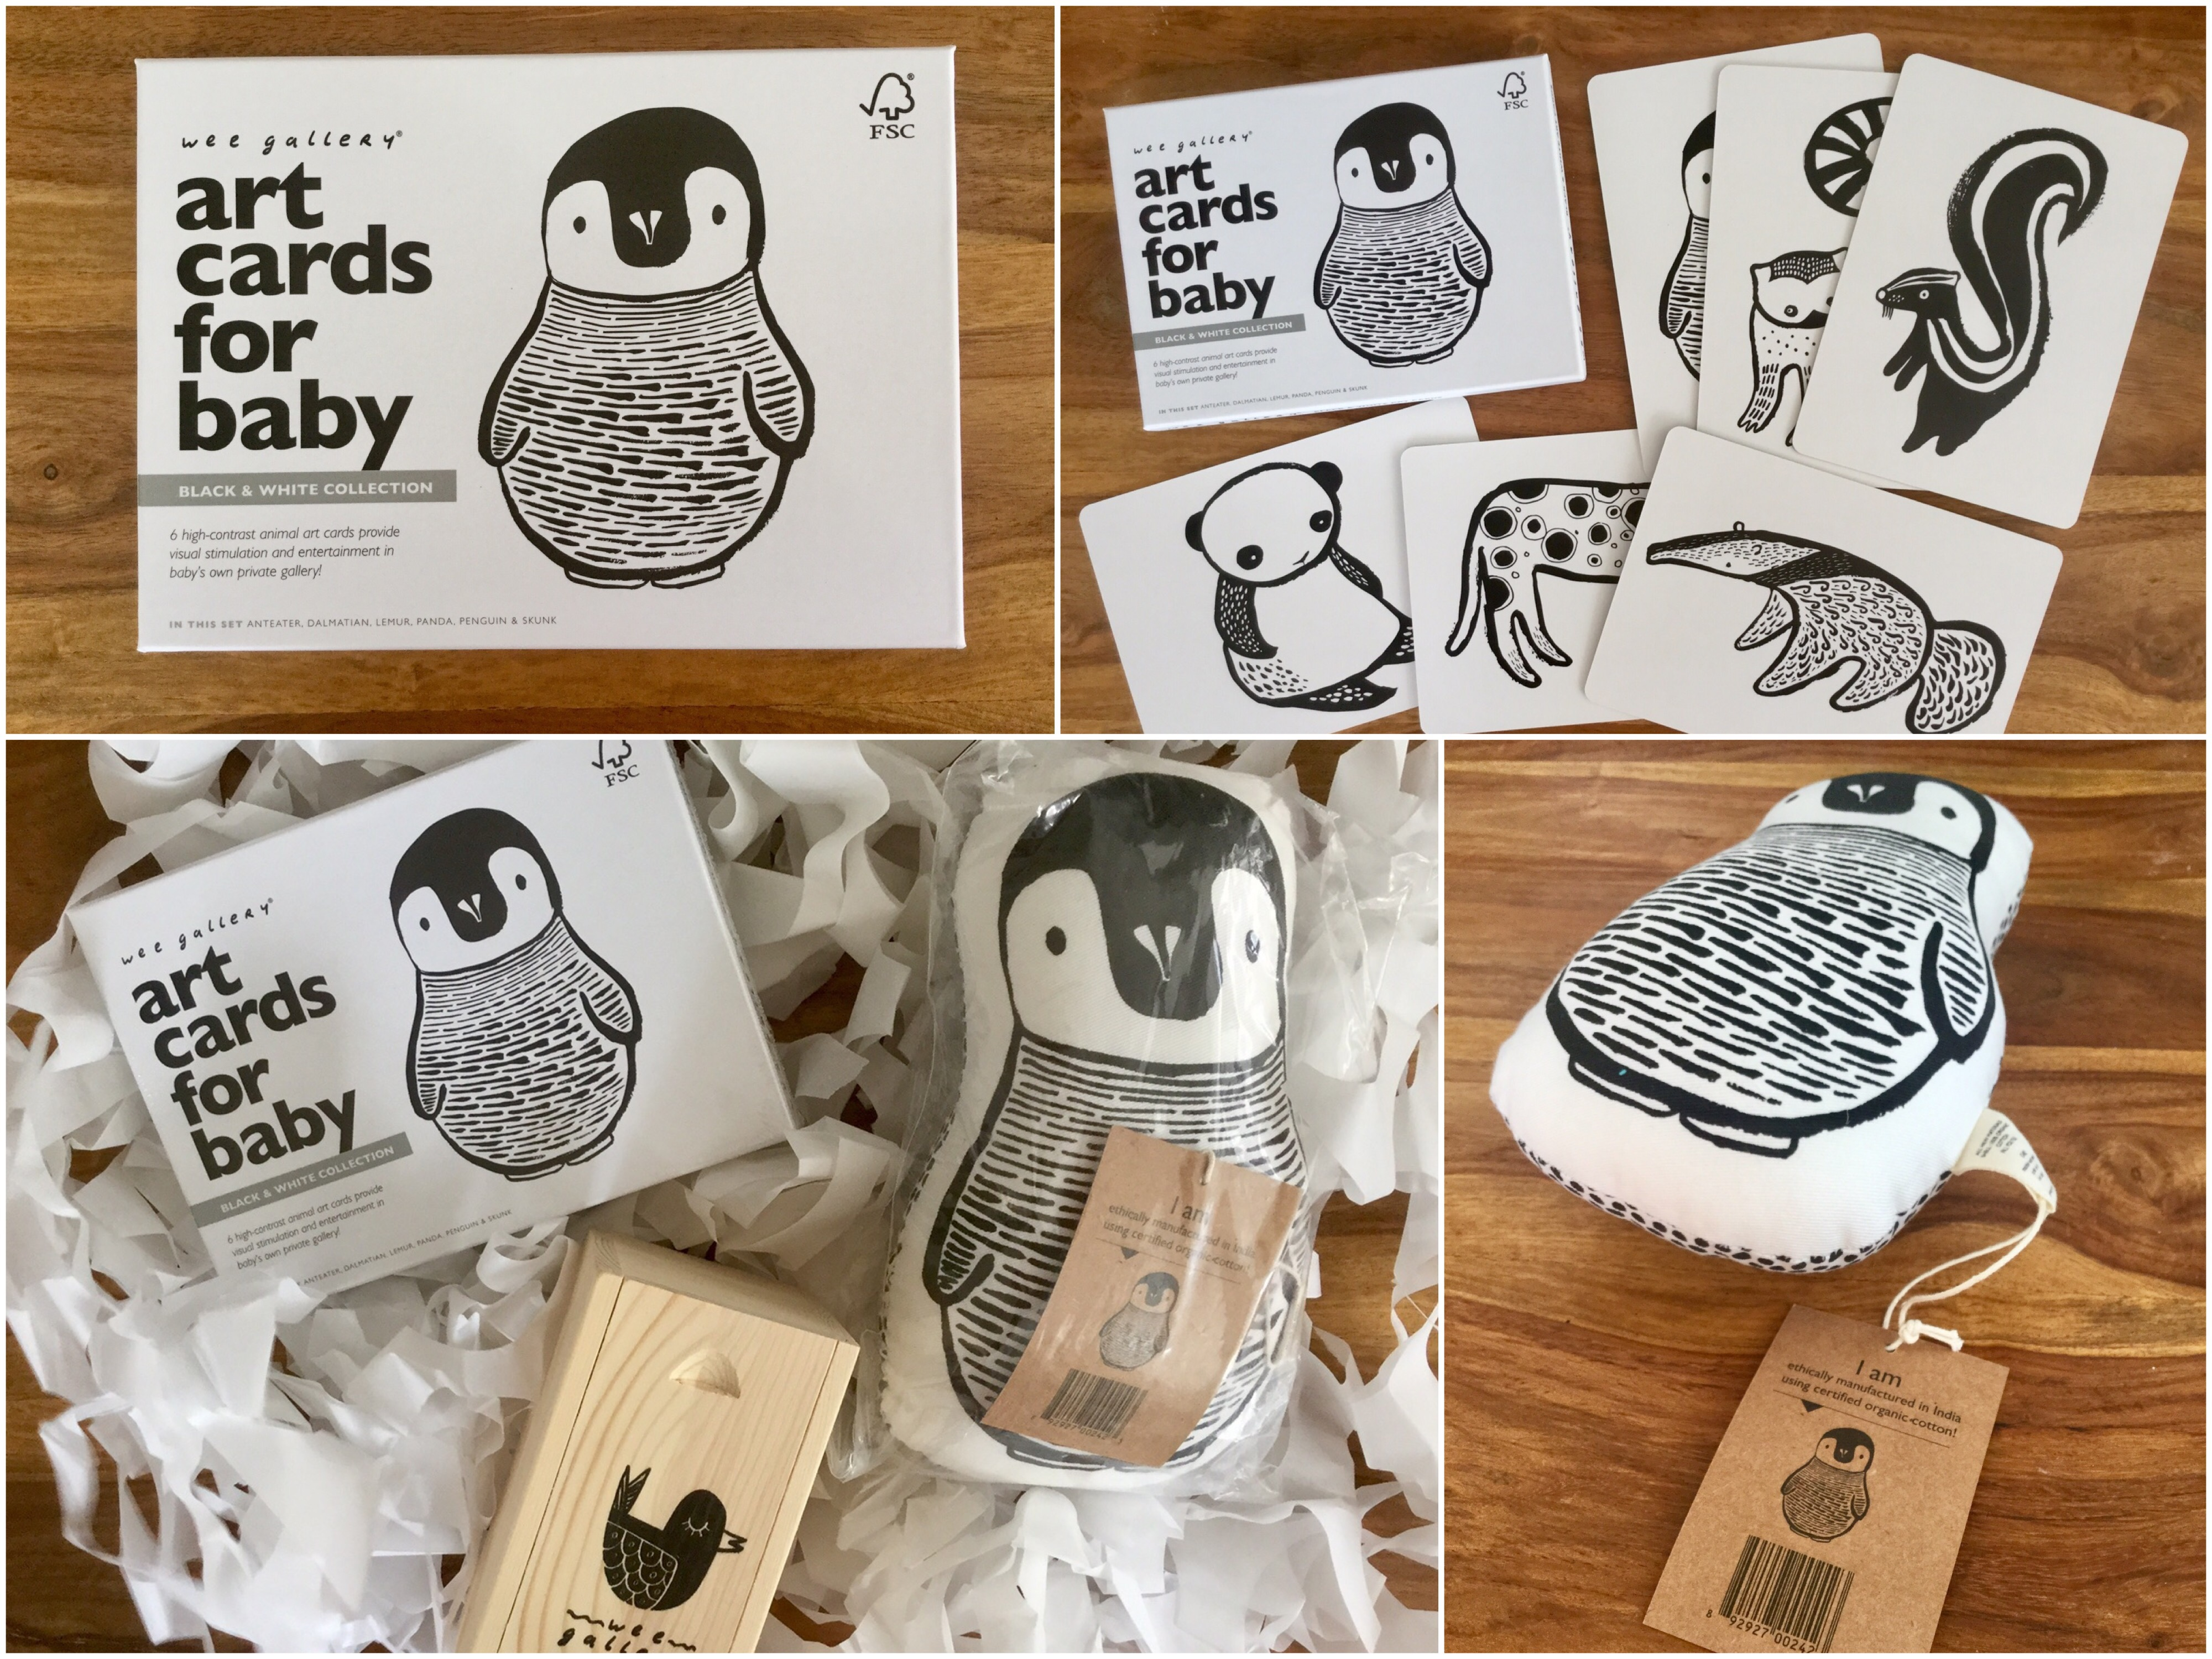 Wee Gallery - Monochrome Baby Toys and Nursery Decor. Black and White goodies for Frankie and the Lamb to review. Art cards, stacking dolls and cot cushion